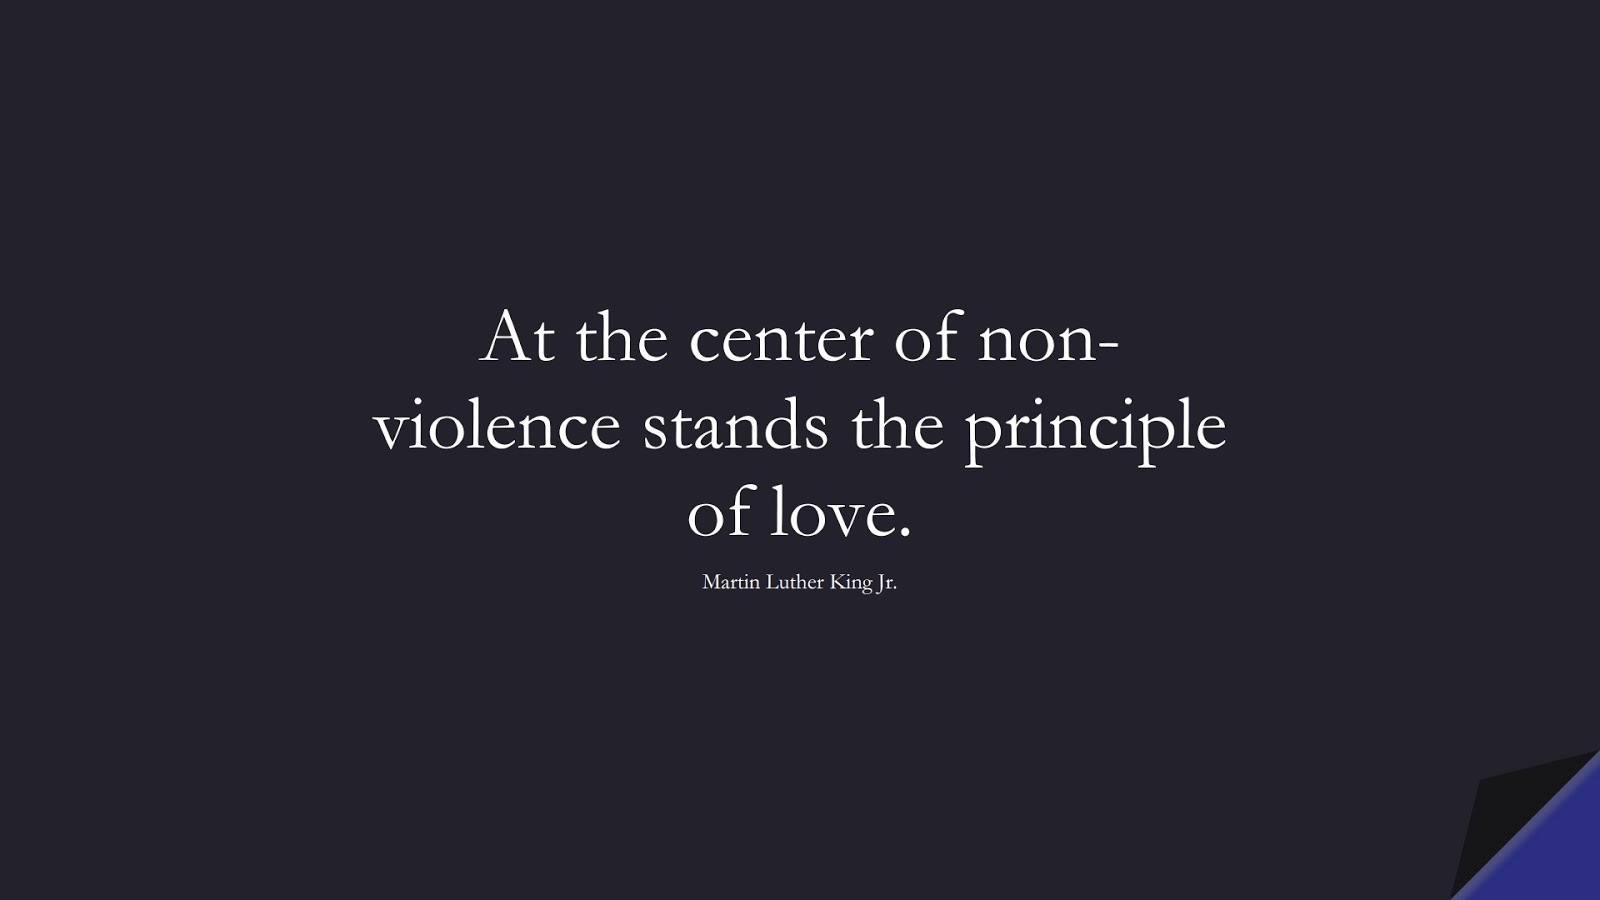 At the center of non-violence stands the principle of love. (Martin Luther King Jr.);  #MartinLutherKingJrQuotes